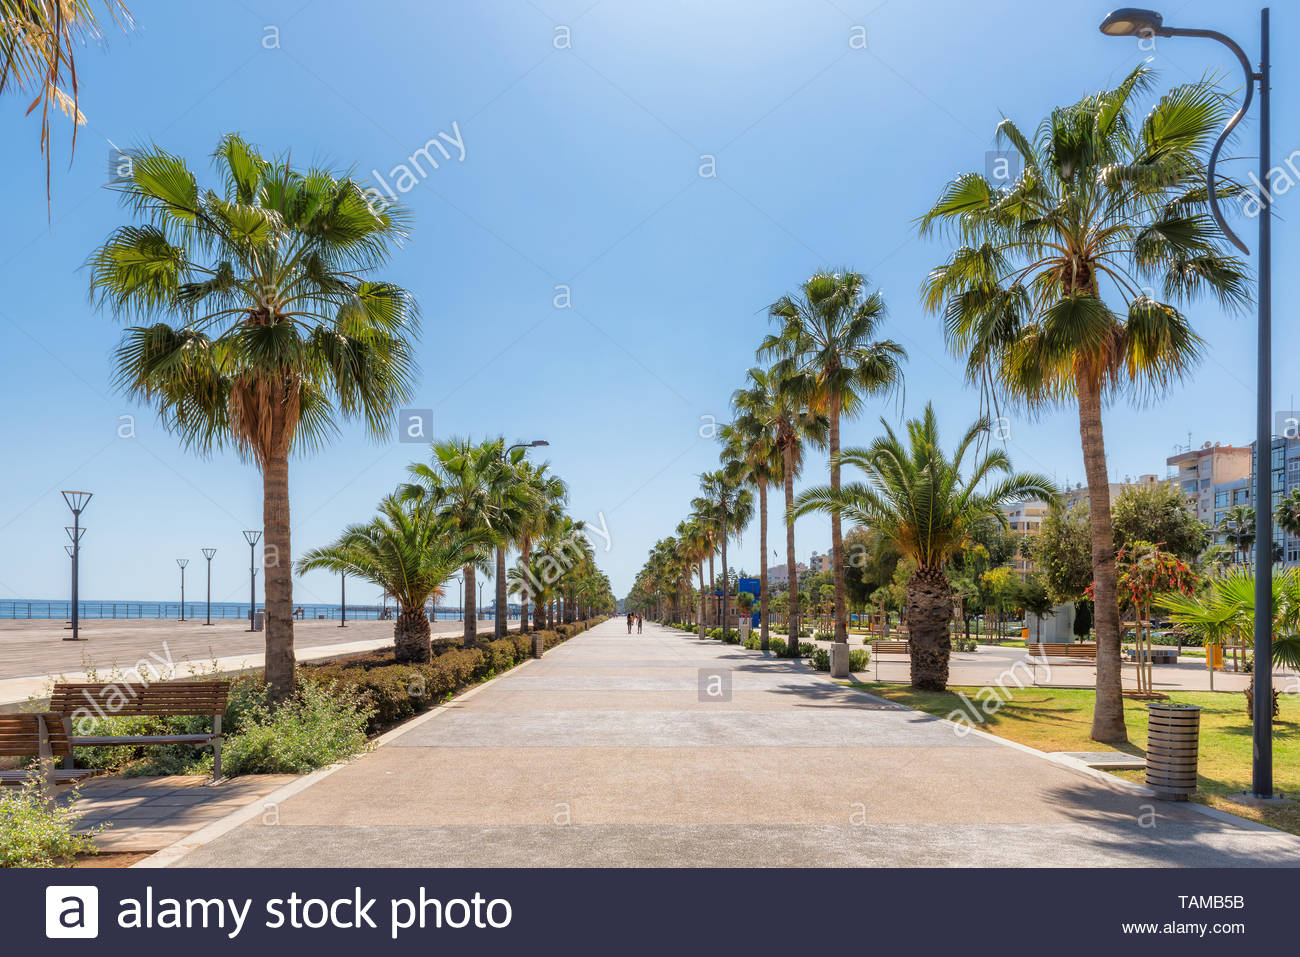 Promenade alley in Limassol, Cyprus - Stock Image